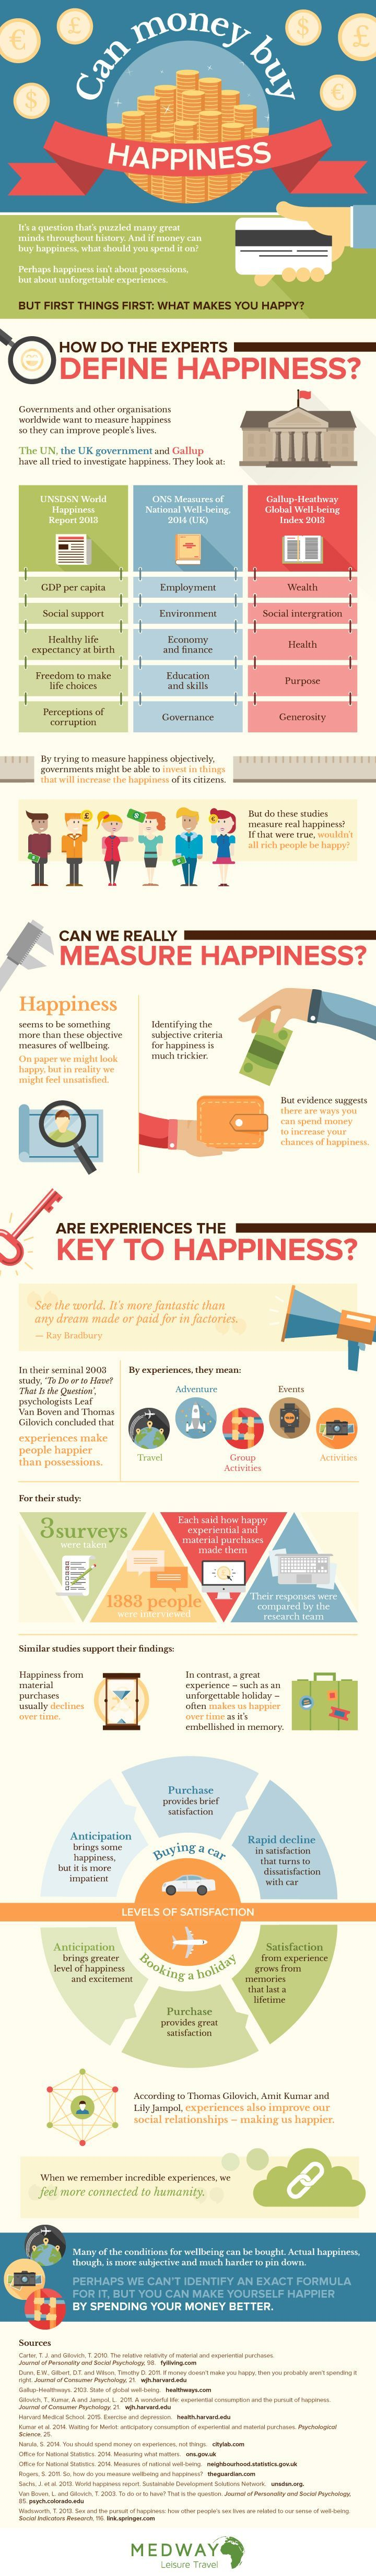 Can Money Buy Happiness? #infographic